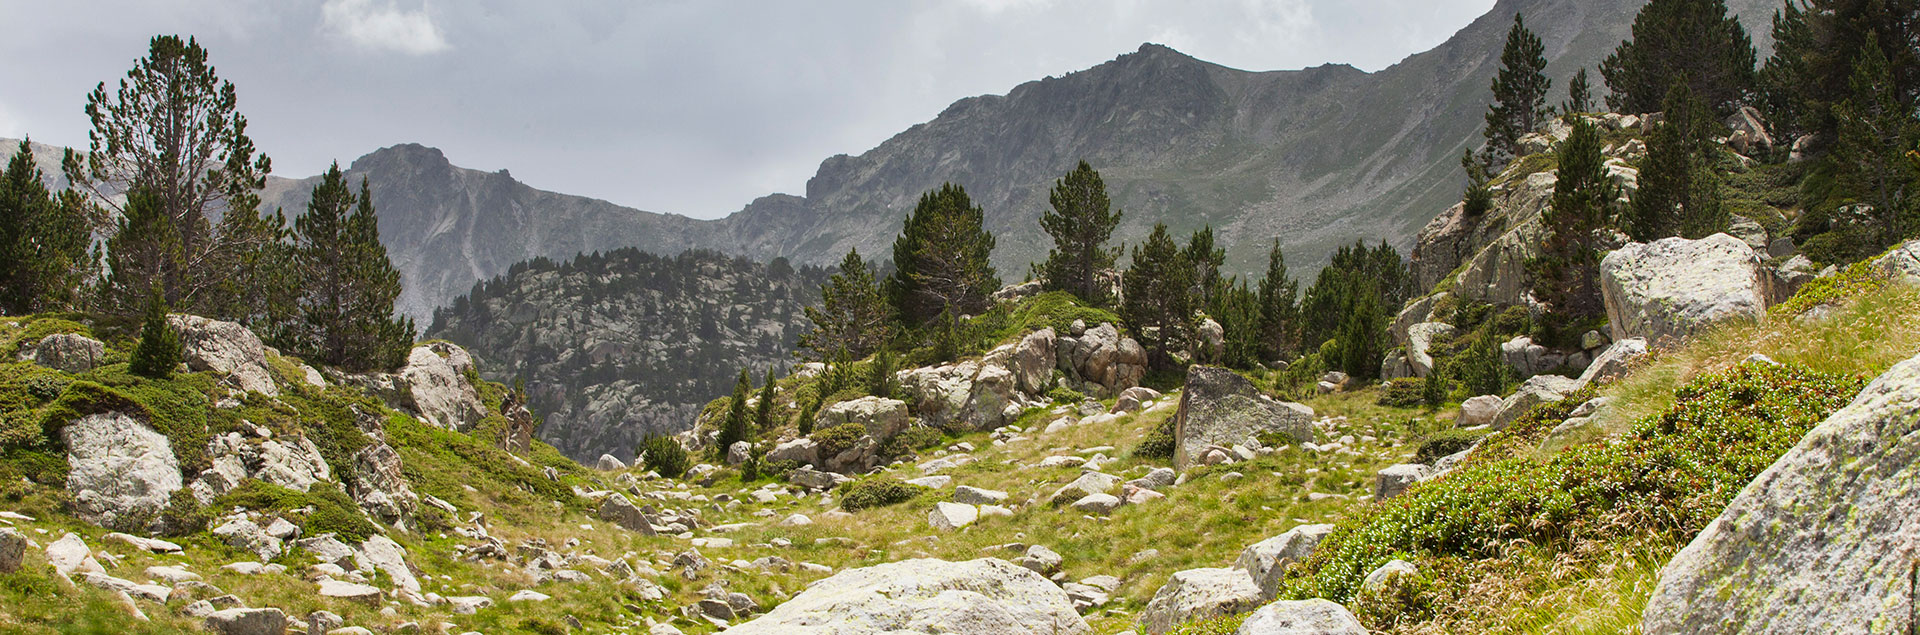 luxury hotel in soldeu with hiking tours andorra